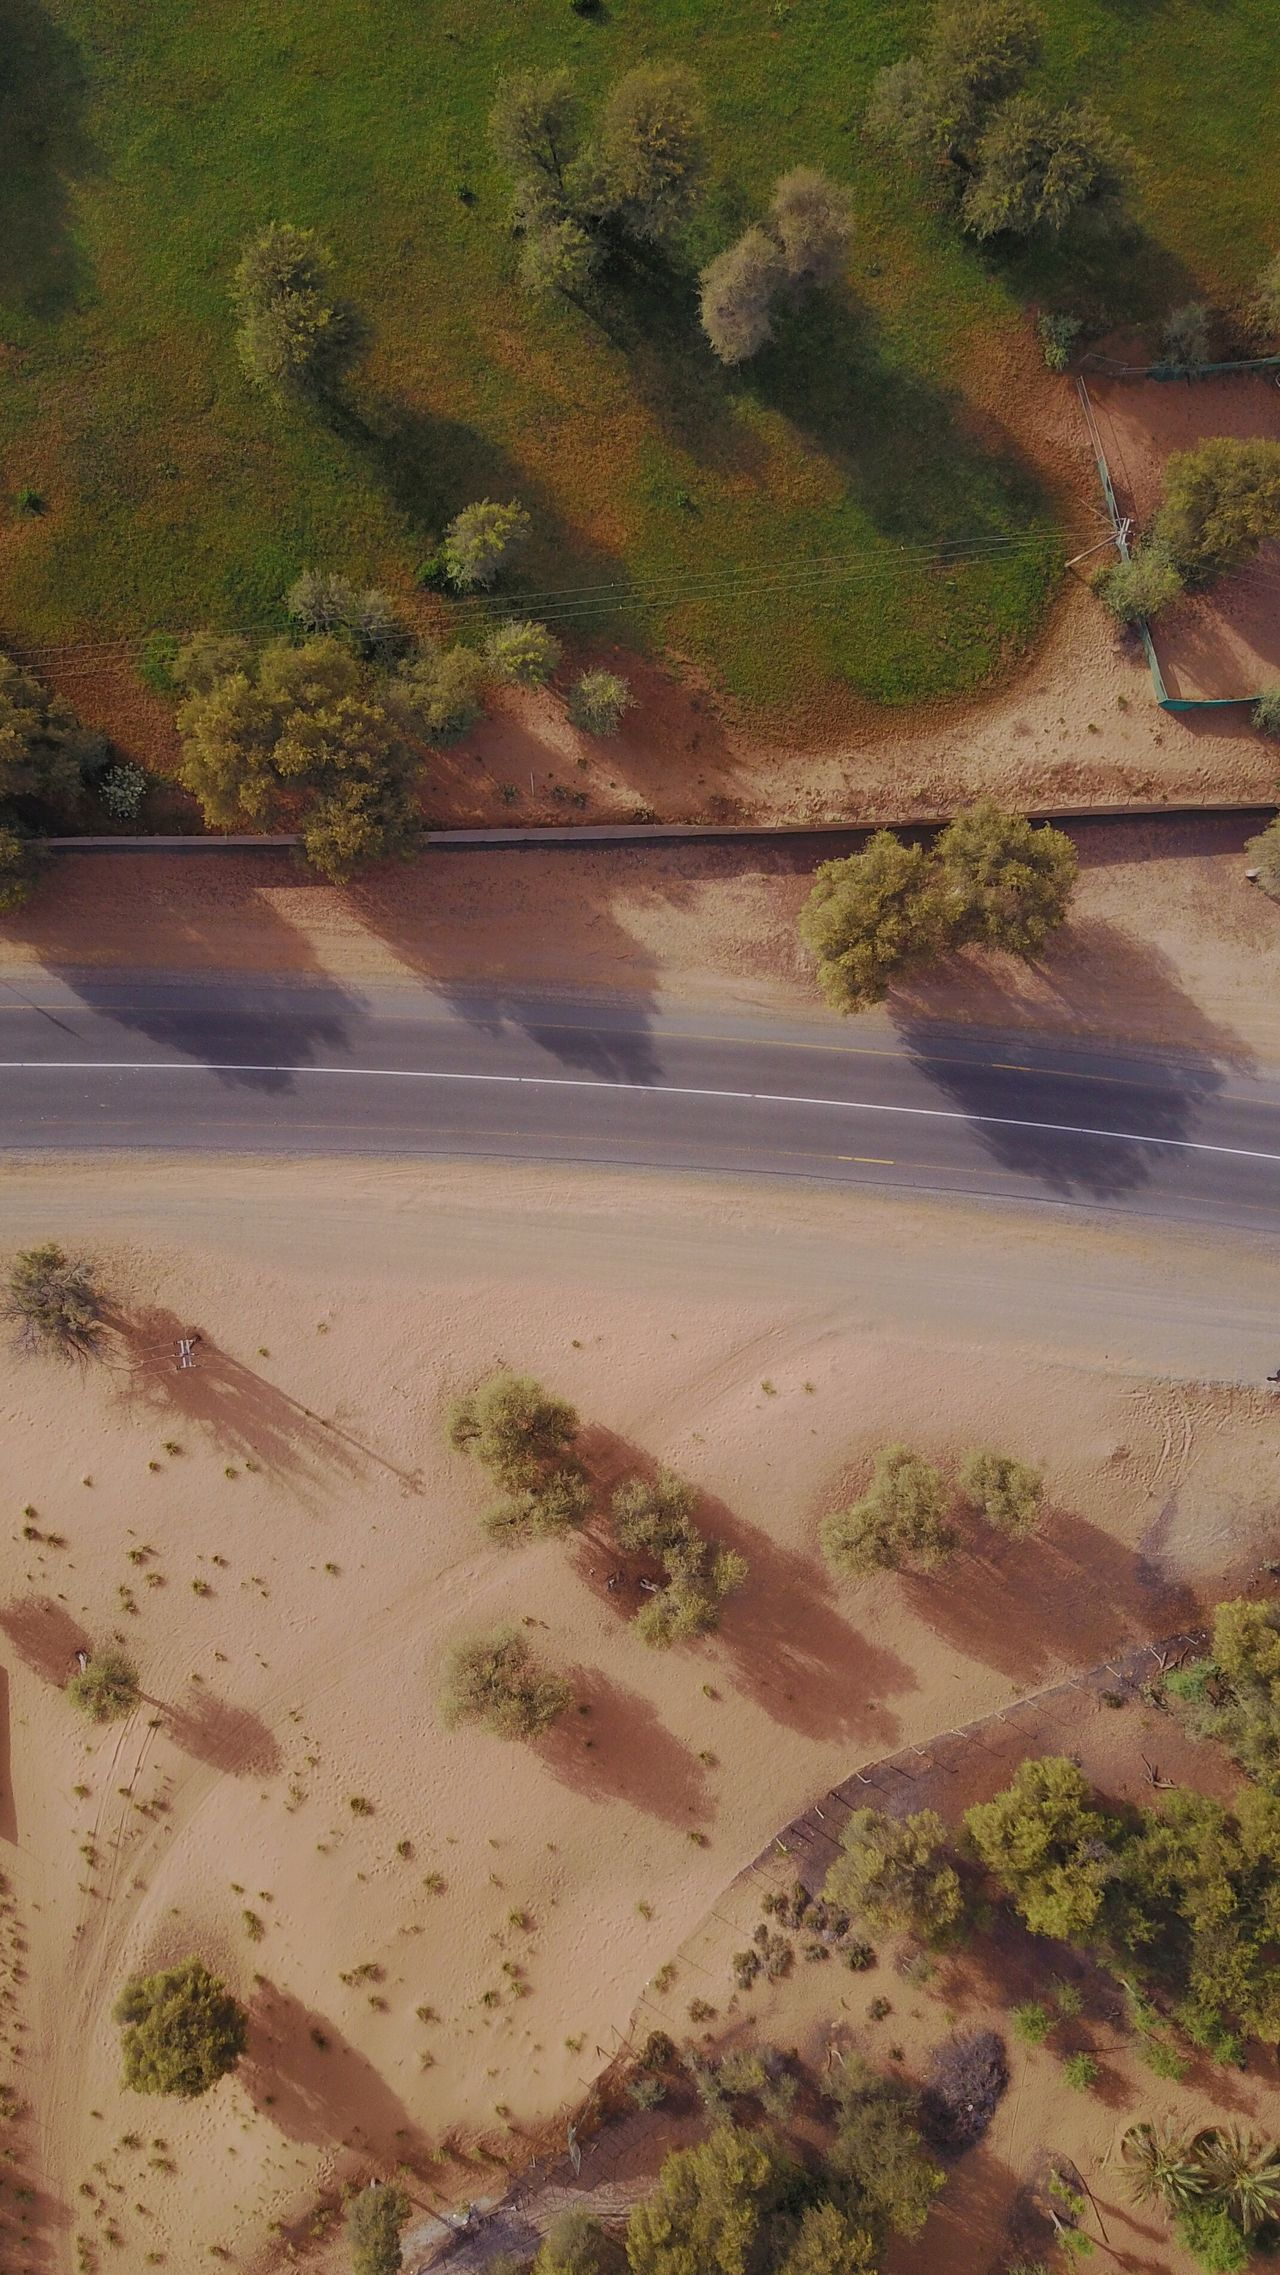 Scenics Tranquility Sand Nature Landscape Beauty In Nature Beach Tranquil Scene No People Outdoors Tree Day Sea Travel Destinations Water Sand Dune Sky Dronephotography Drone  Dji DJI Mavic Pro